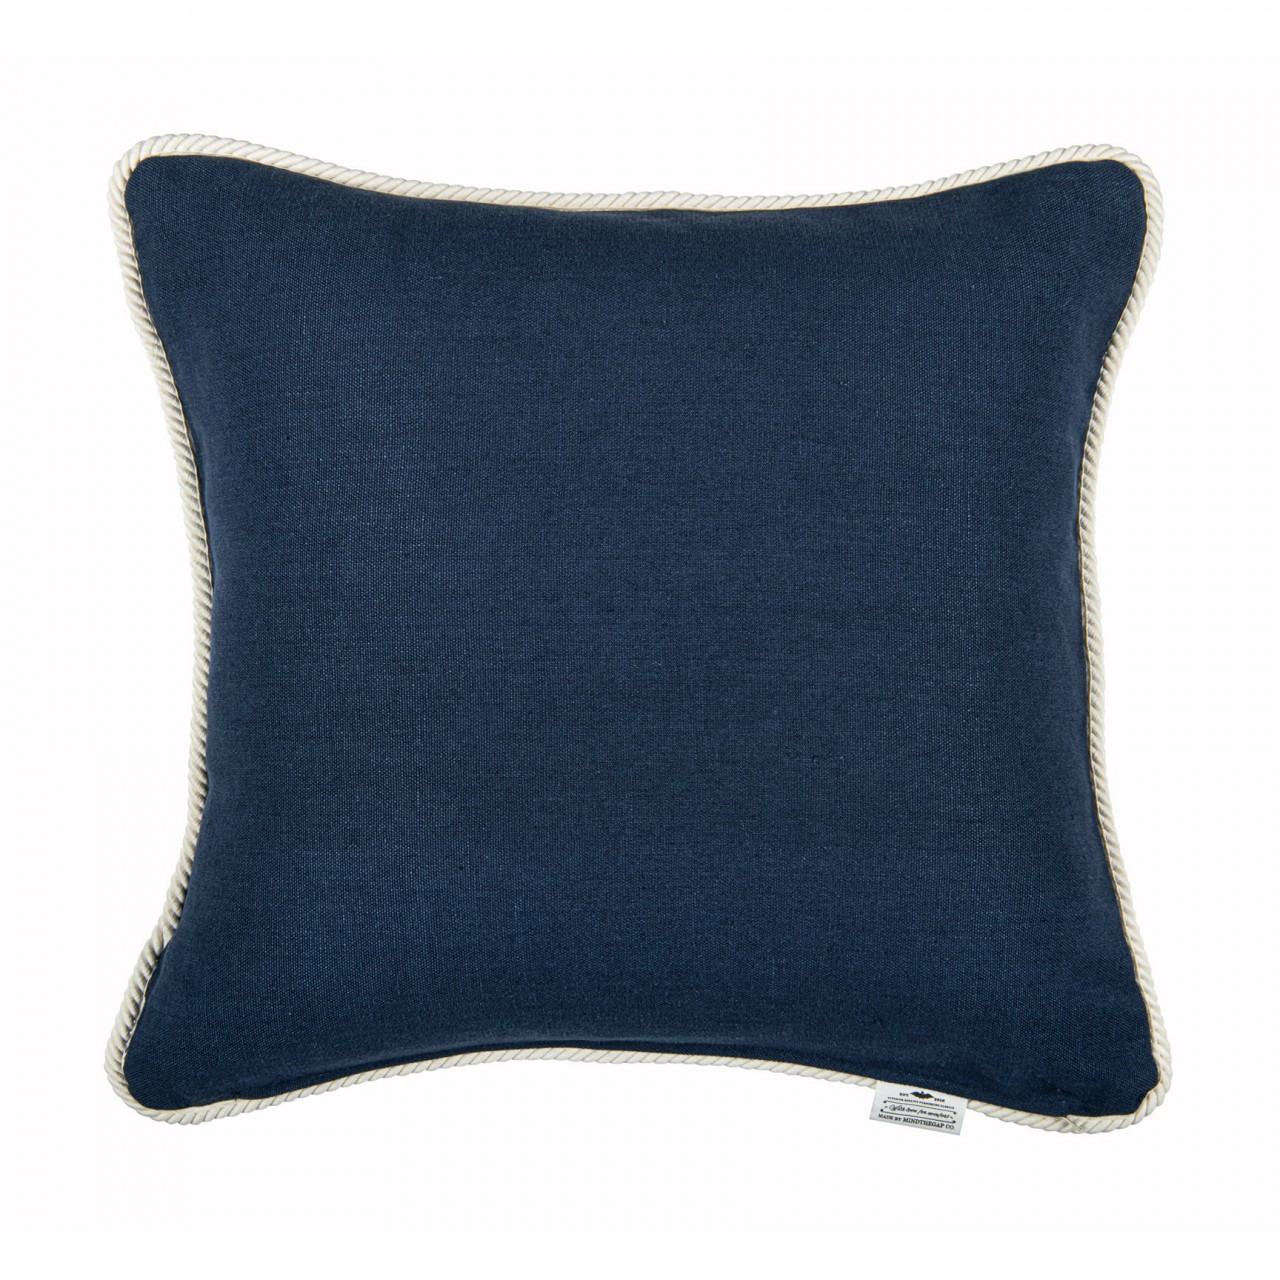 AHOY! Linen Embroidered Cushion